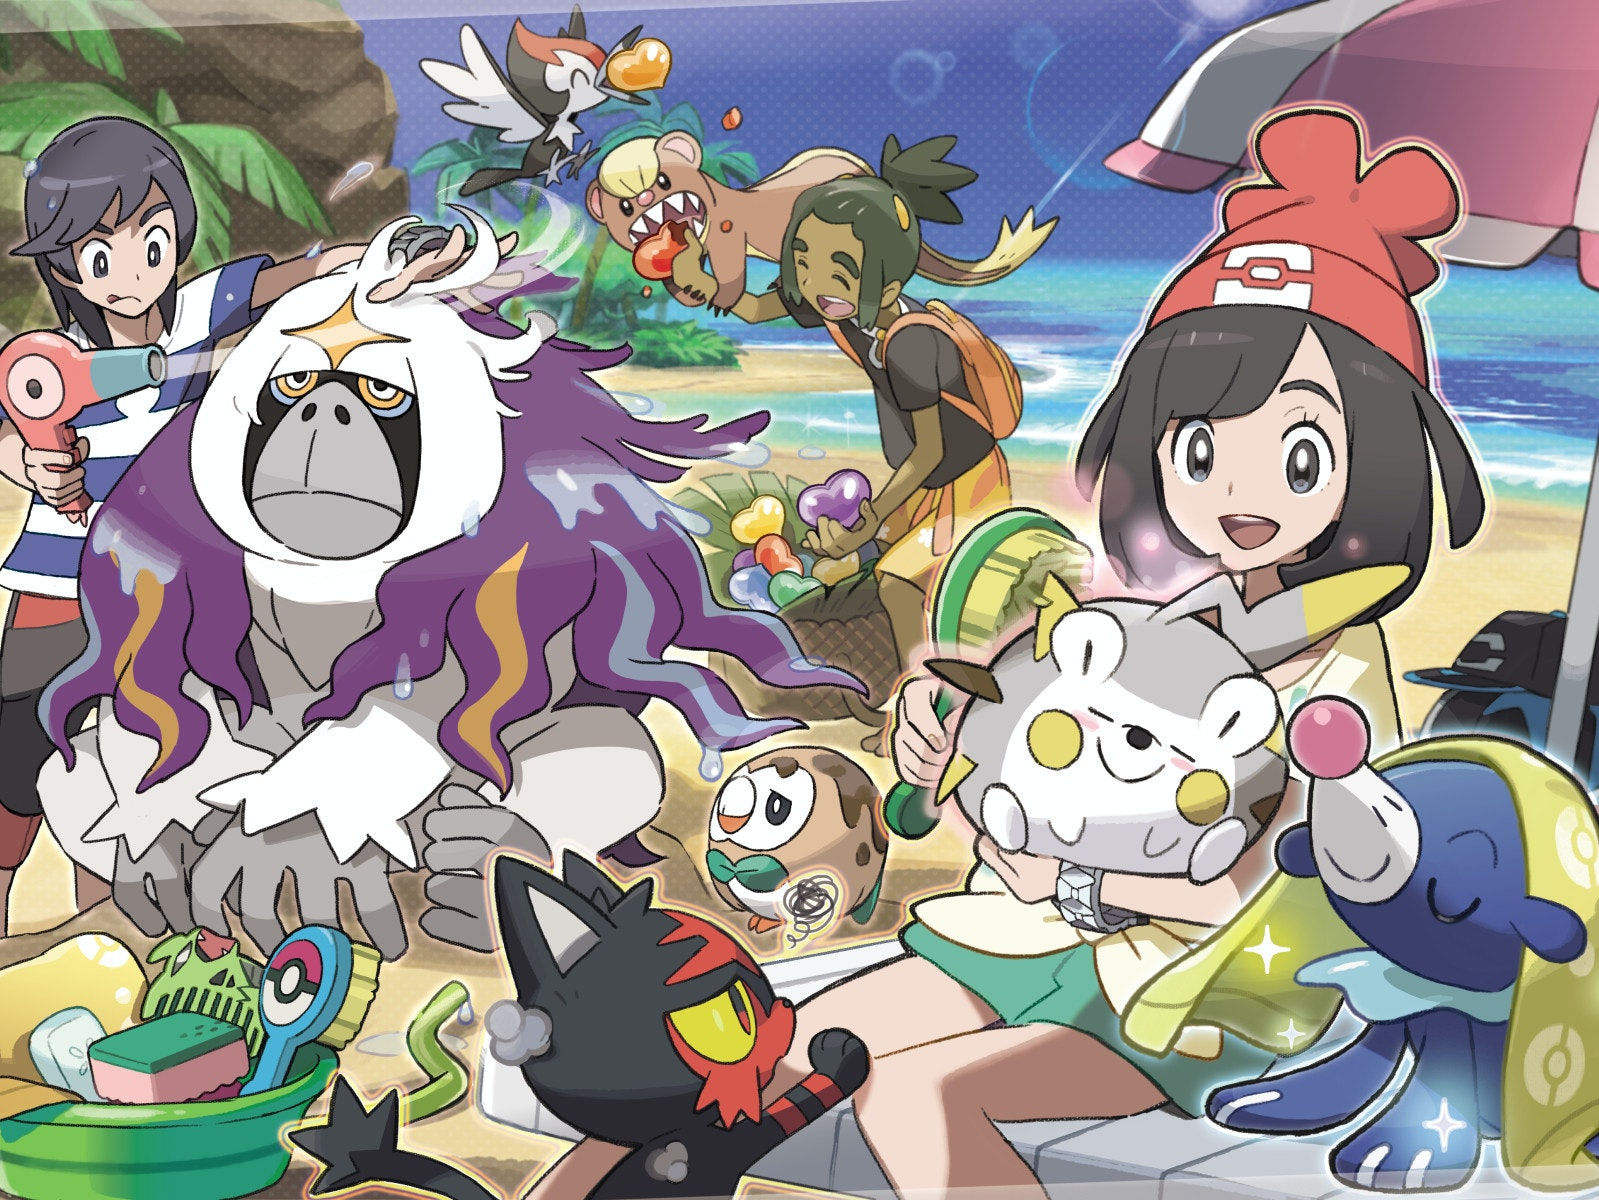 The End of 'Pokemon Sun' and 'Moon' Is Only the Beginning